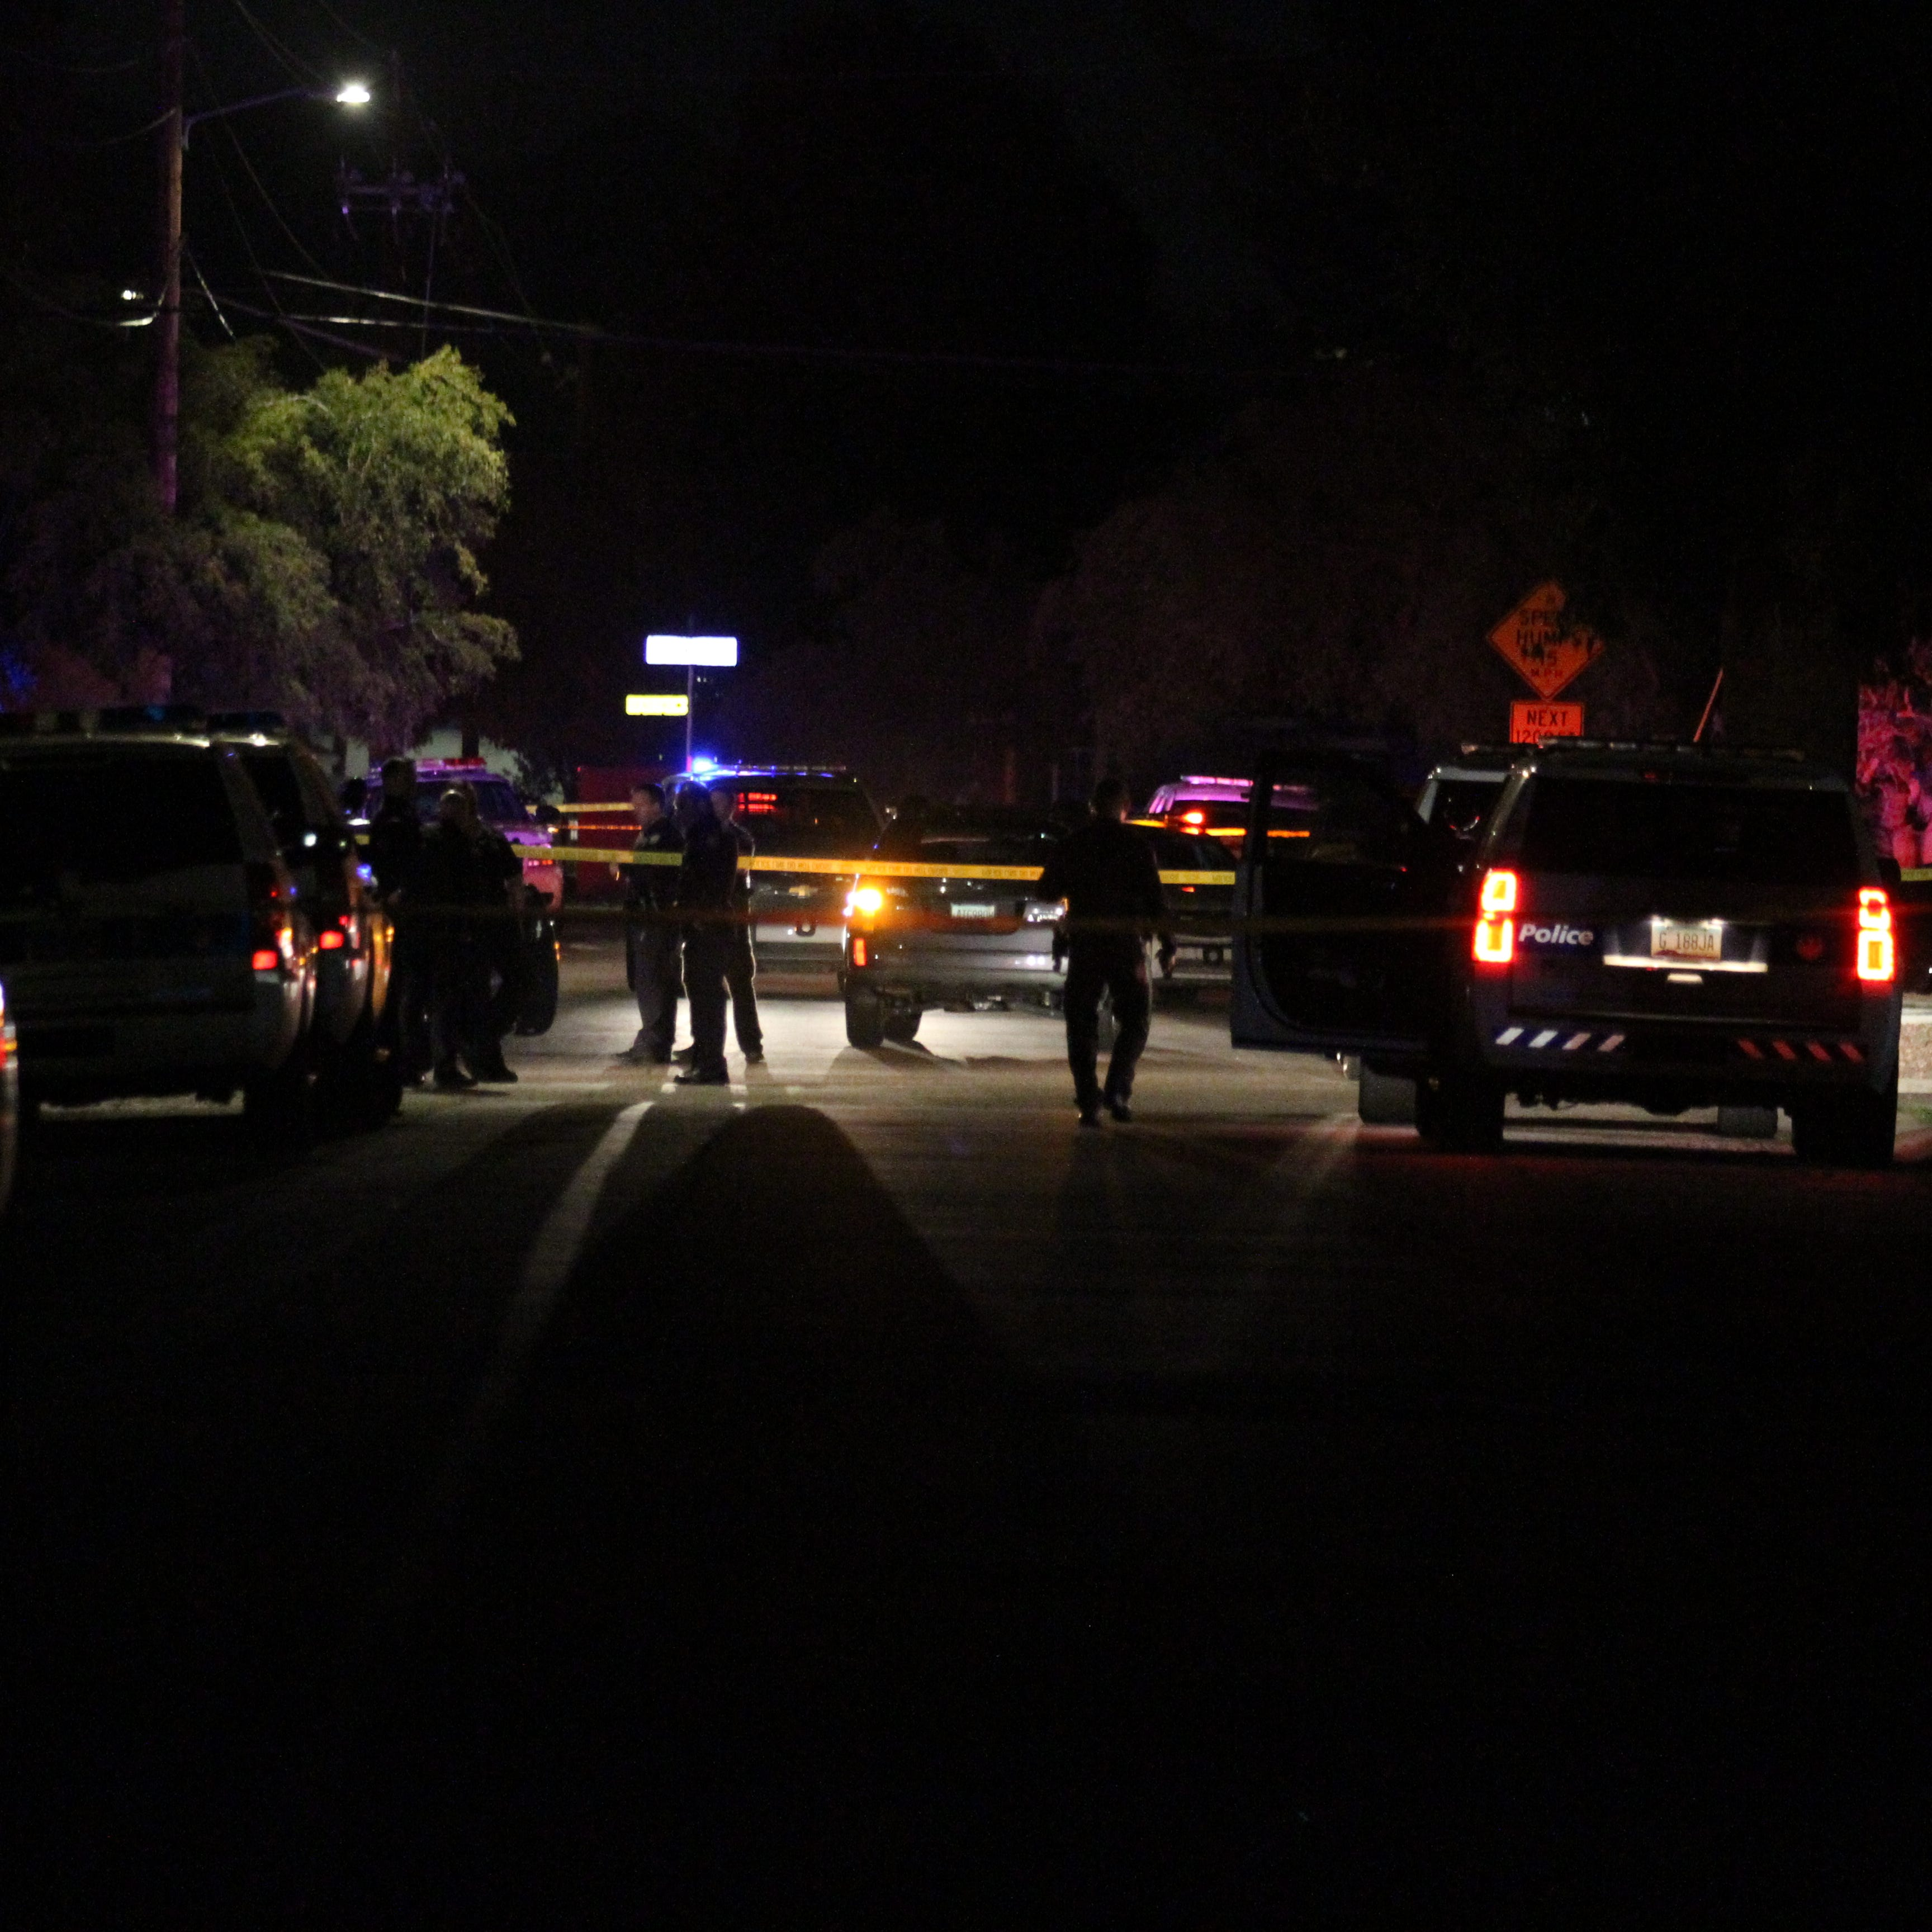 Phoenix officer fatally shoots armed man during domestic violence call